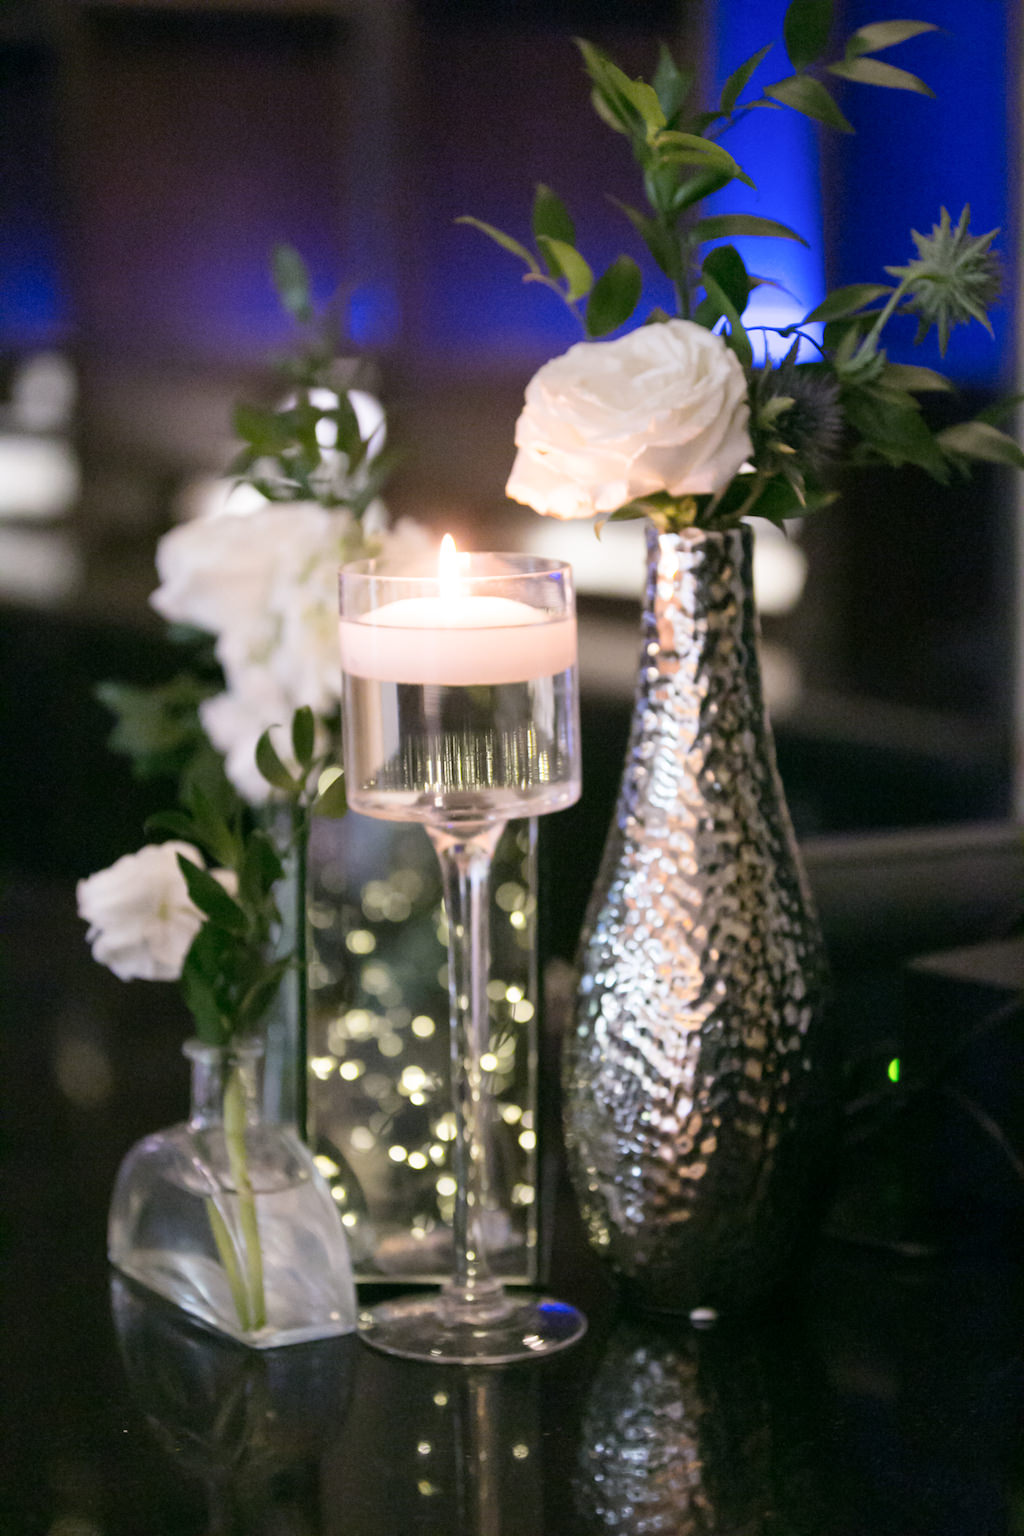 Wedding Reception Decor, Glass Candlestick with Floating Candle, Silver Vase with White Rose and Greenery Centerpiece | Tampa Bay Photographer Carrie Wildes Photography | Wedding Planner Coastal Coordinating | Florist Gabro Event Services